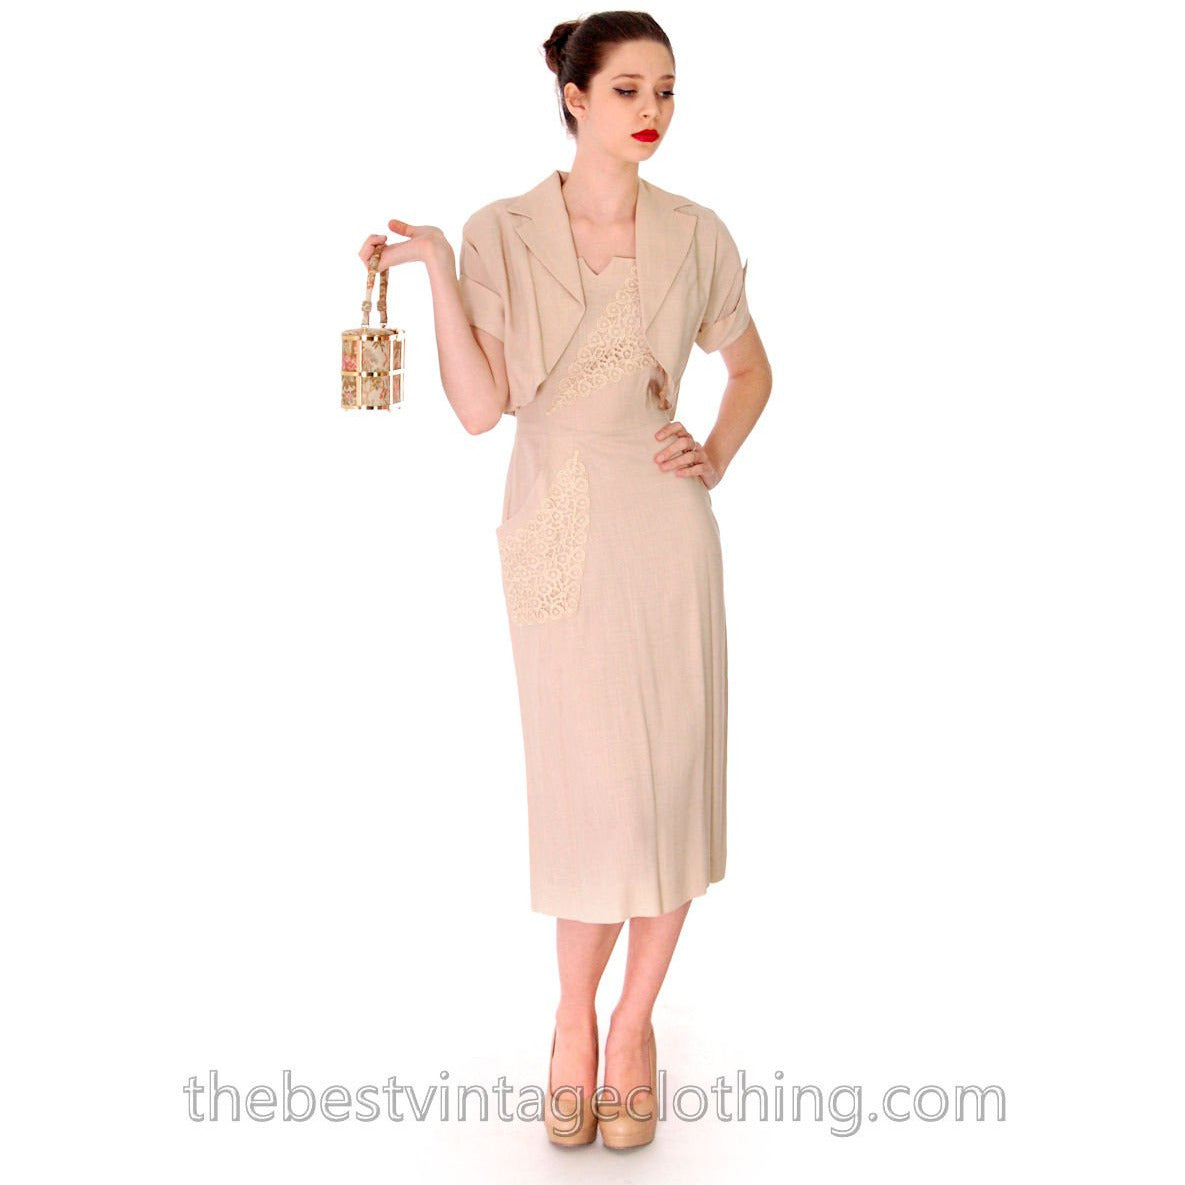 1950s Beige Rayon Day Dress & Jacket Vintage Lace Applique Never Worn  Size M 36-26-38 - The Best Vintage Clothing  - 1